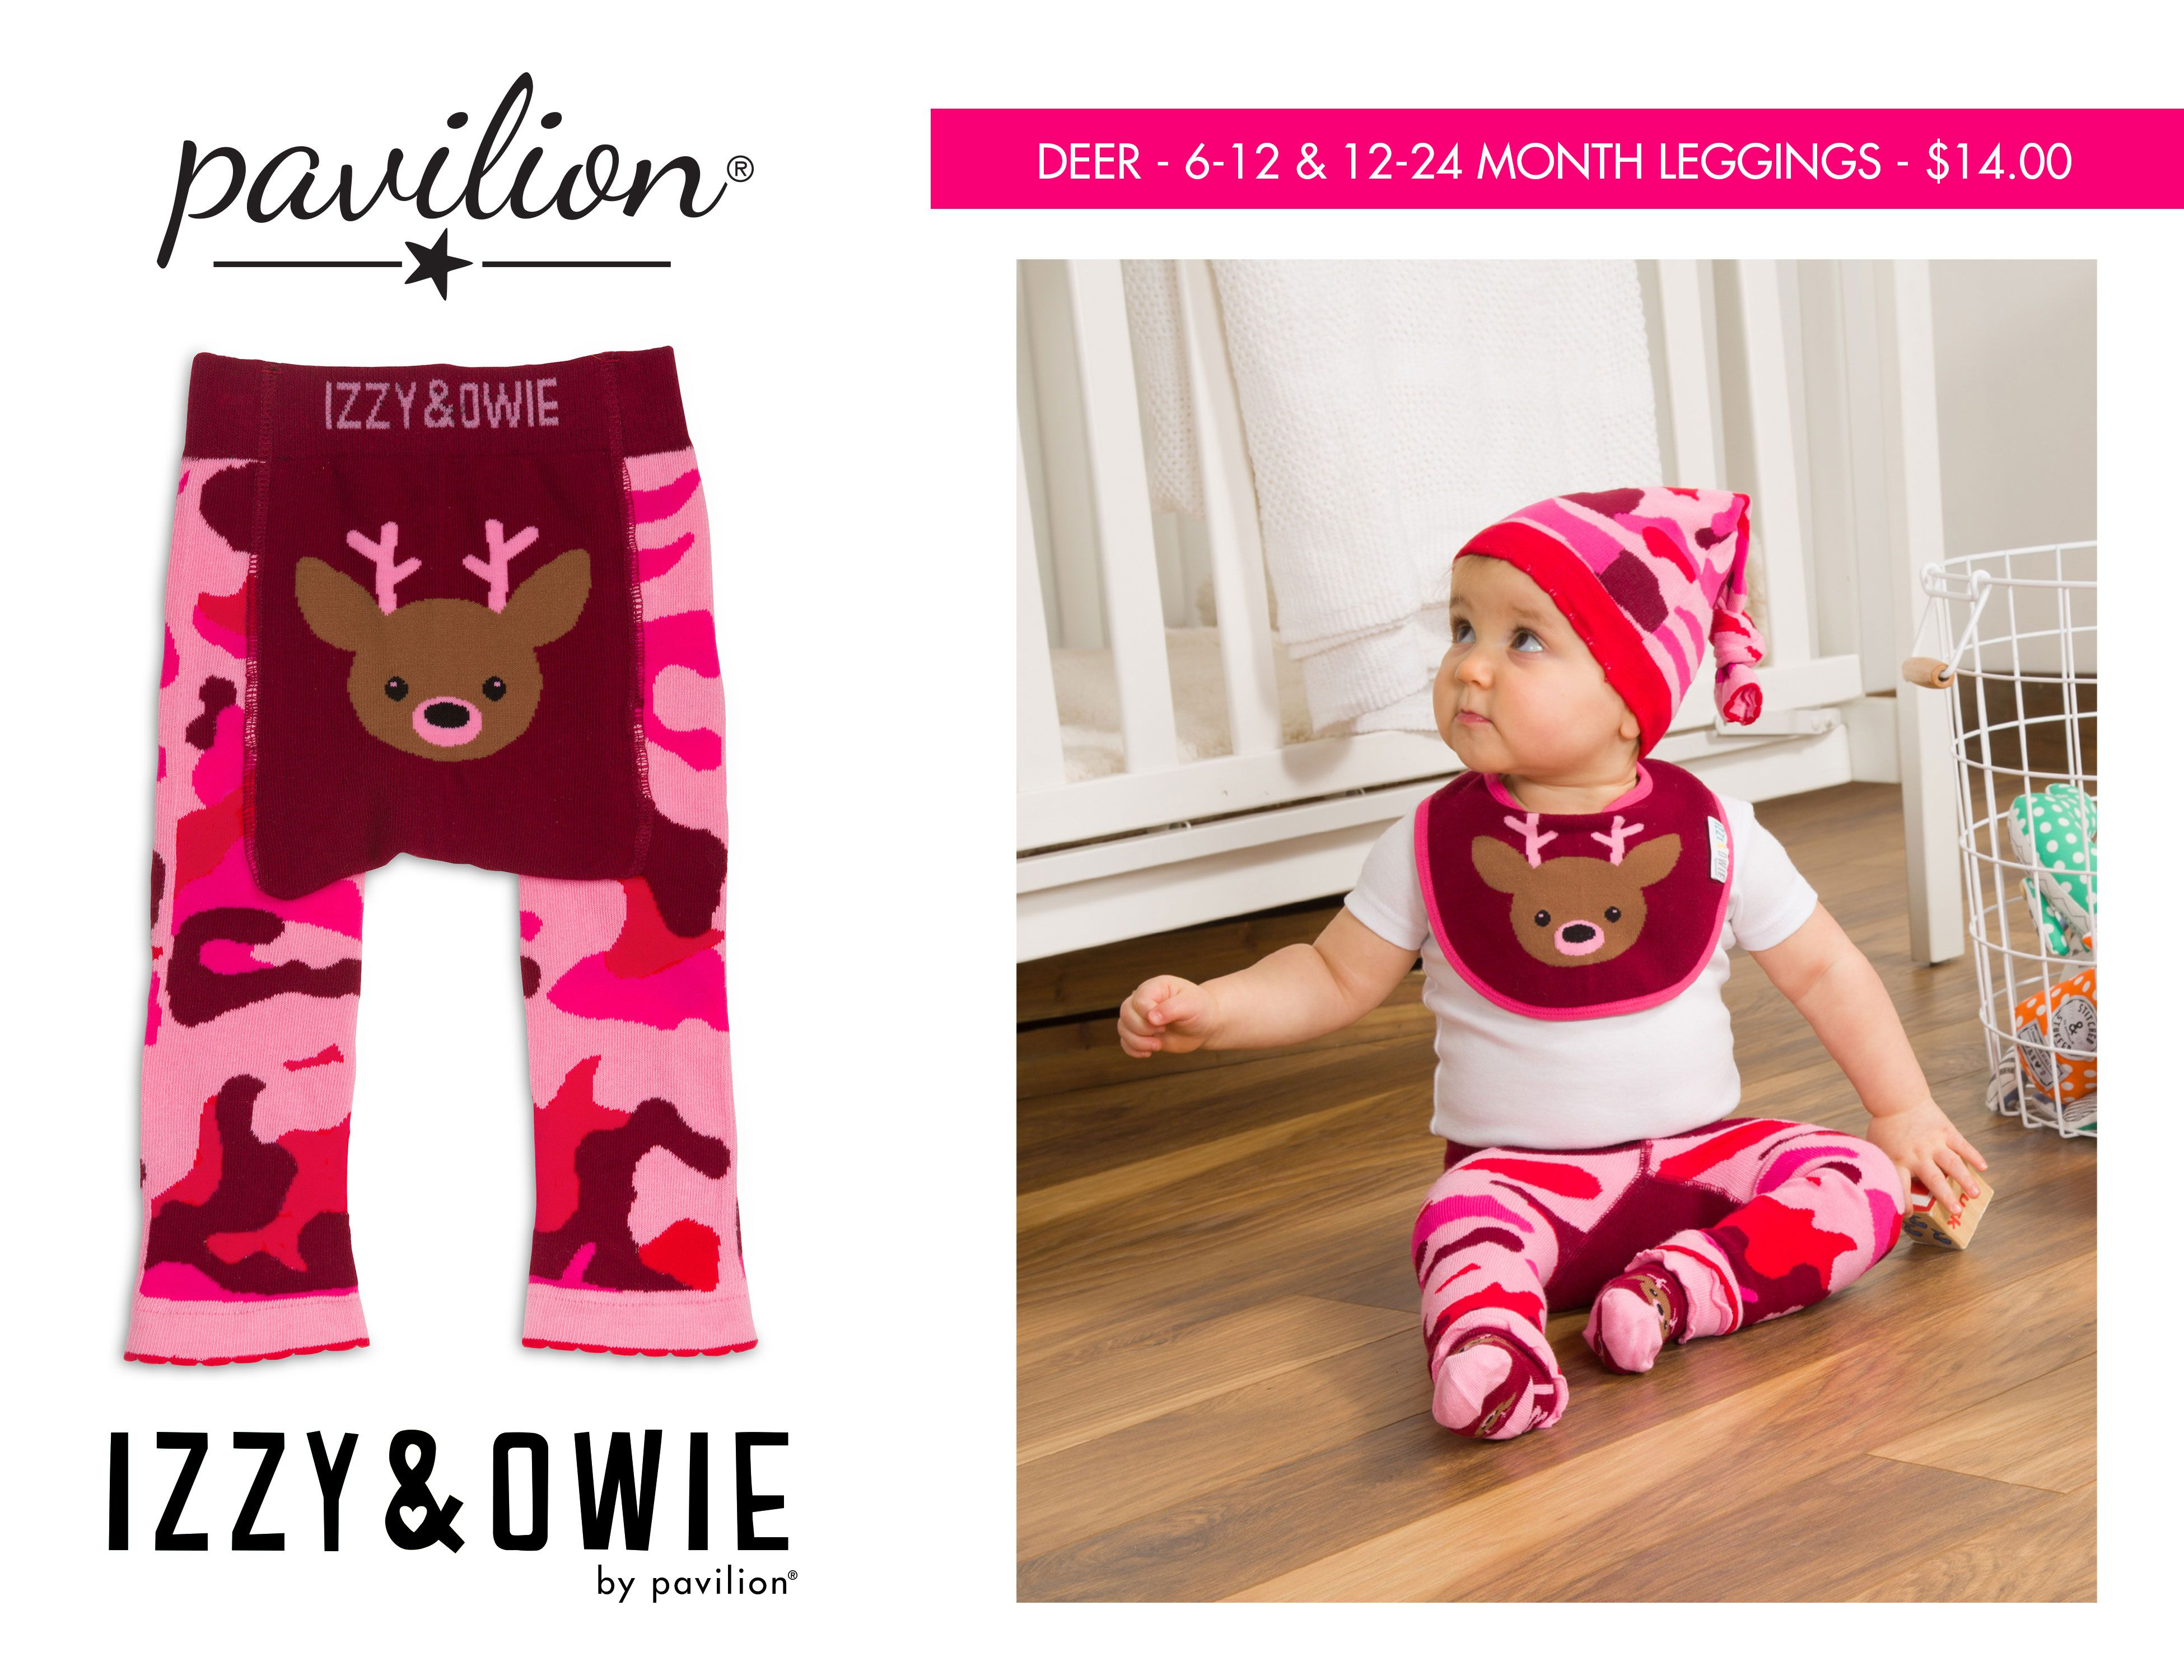 7be9fa35a Pavilion - Izzy & Owie - Pink Camo - Pink Deer - Soft Stretchy Baby Girl  Leggings 6-12 & 12-24 Months - Comes With A Gift Hanger - All Designed Done  In- ...